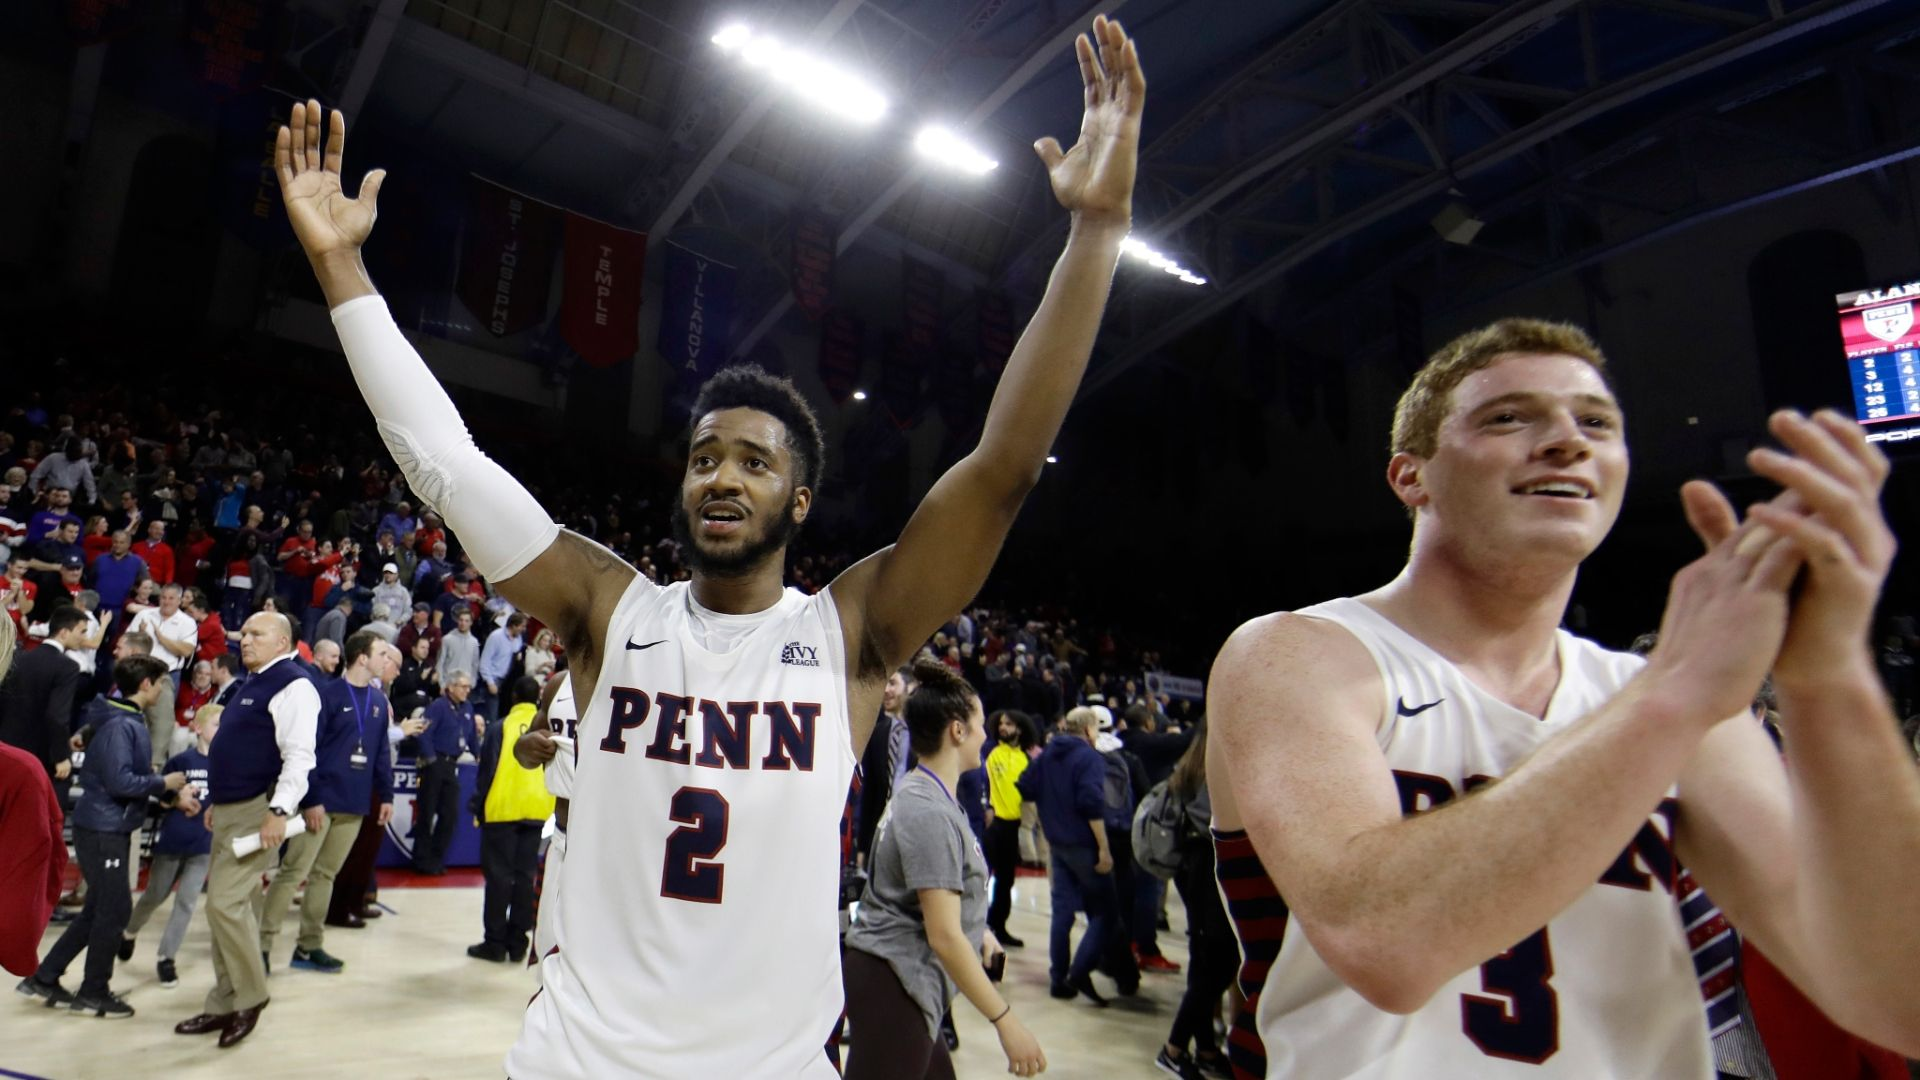 Penn makes clutch plays down the stretch to upset No. 17 Nova